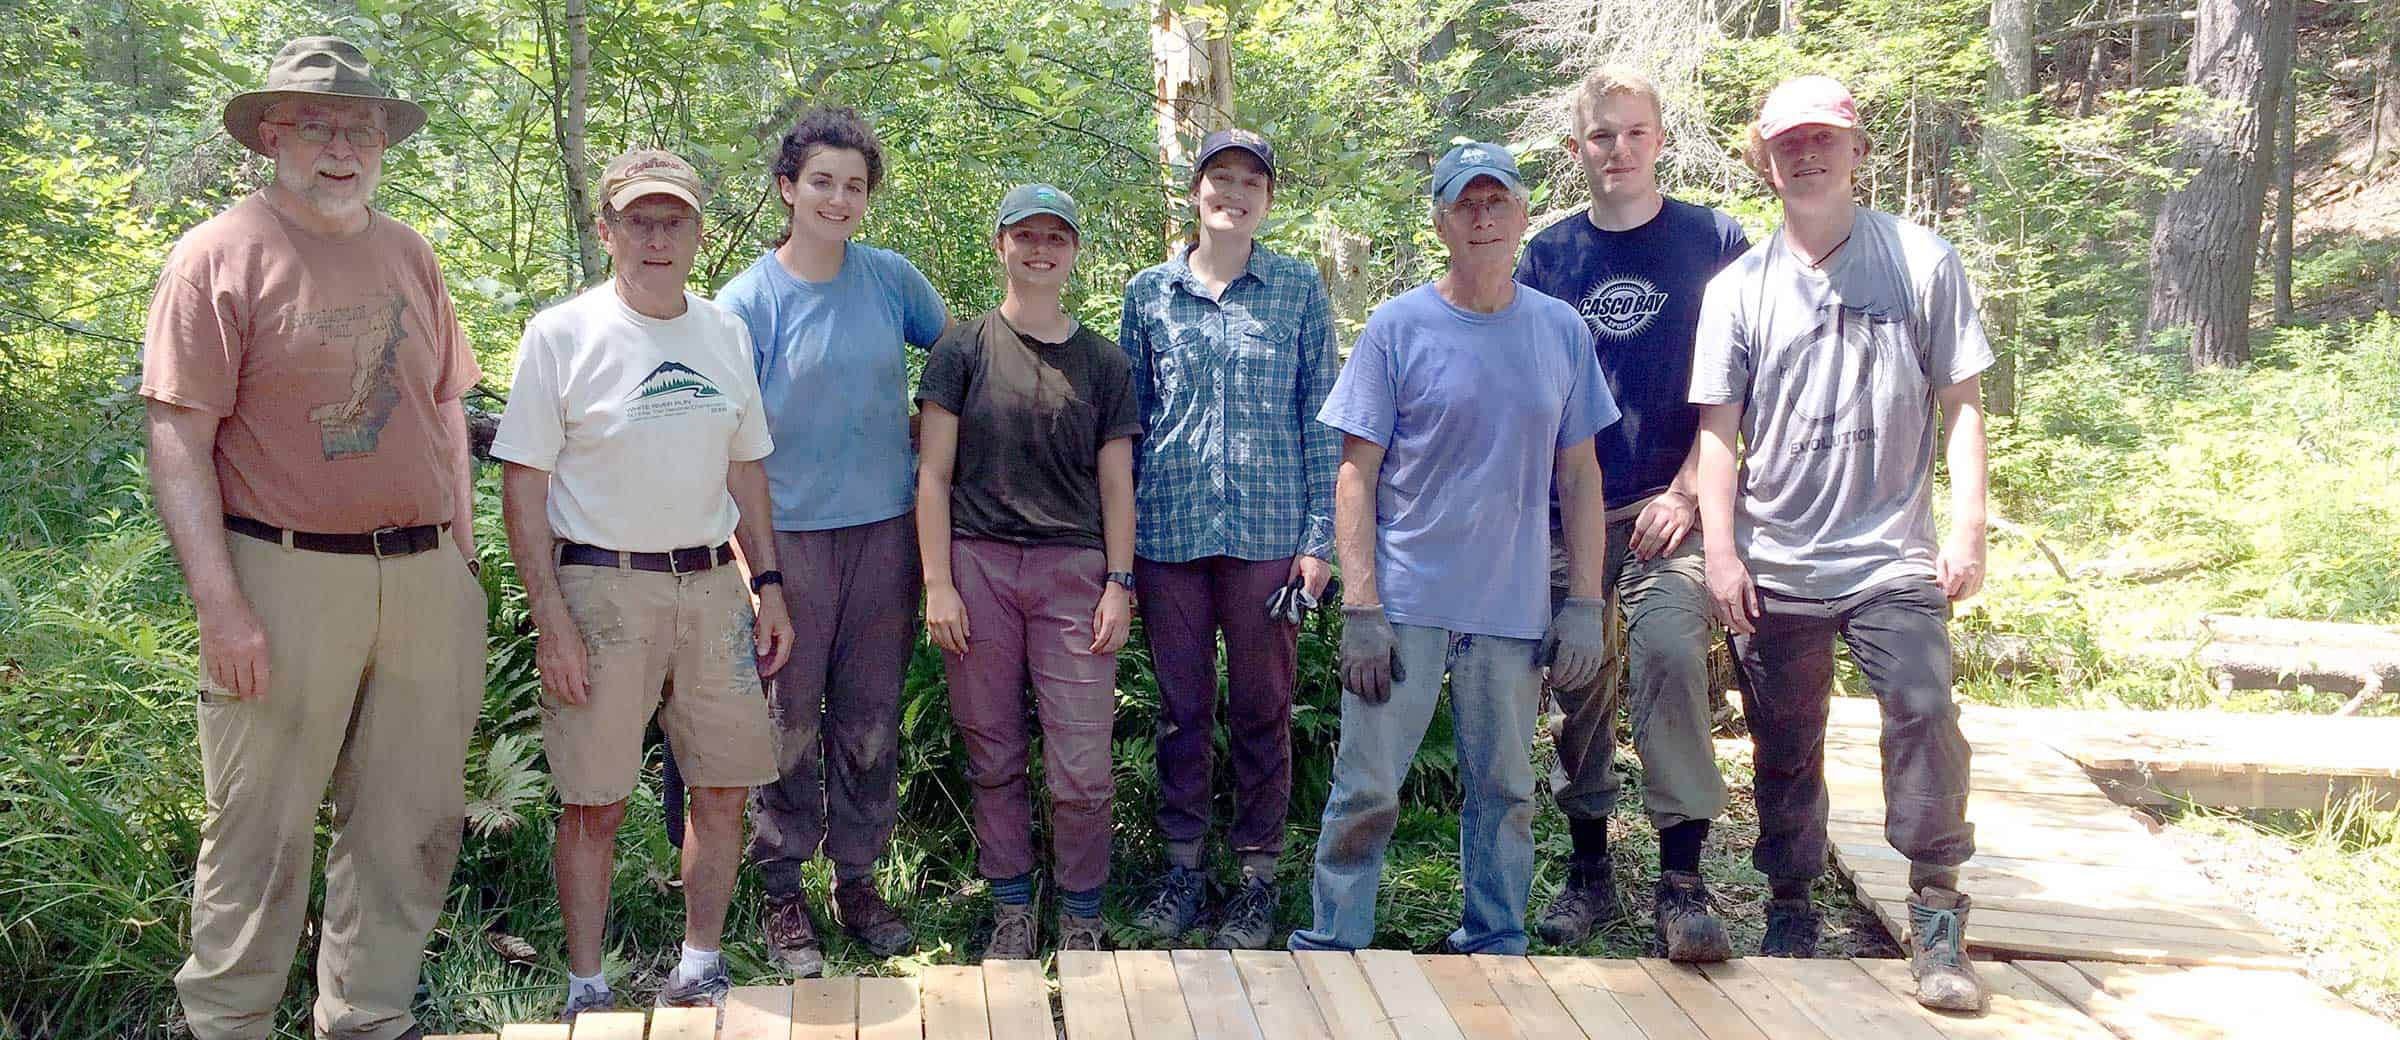 Ryan works with volunteers to build bog bridges at Red Rose Preserve (set to open in the fall of 2019).